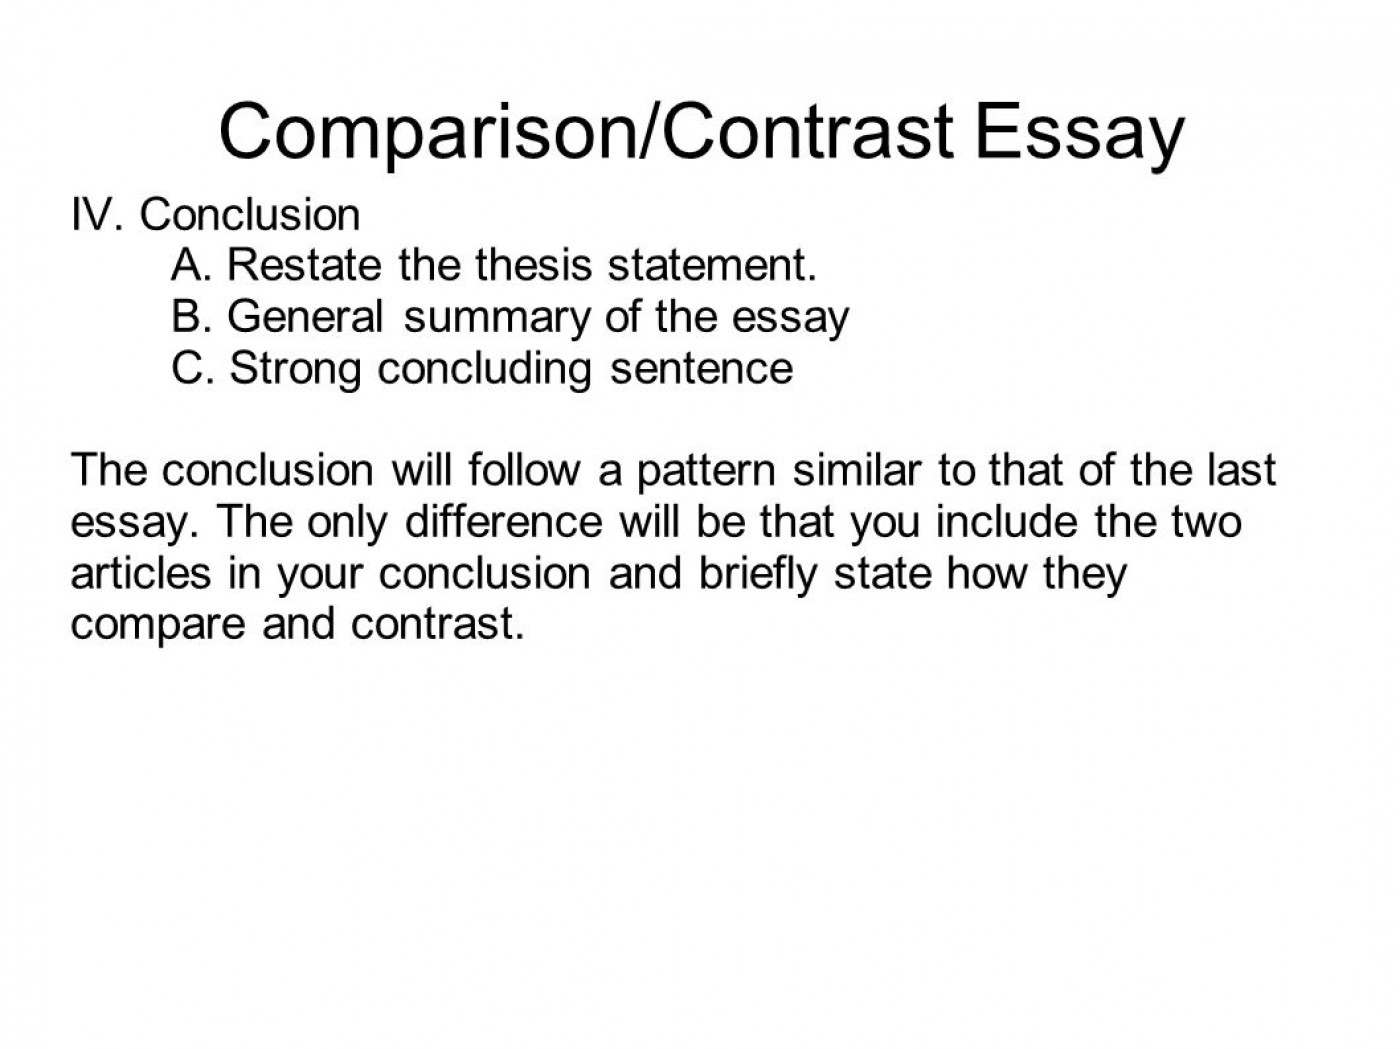 010 Good Compare And Contrast Essays Conclusion Paragraph For How To Write An Essay Sli Analysis Argumentative Art Academic Informative Sentence Opinion Unbelievable The Great Gatsby Tom Examples Middle School Movie Book 1400